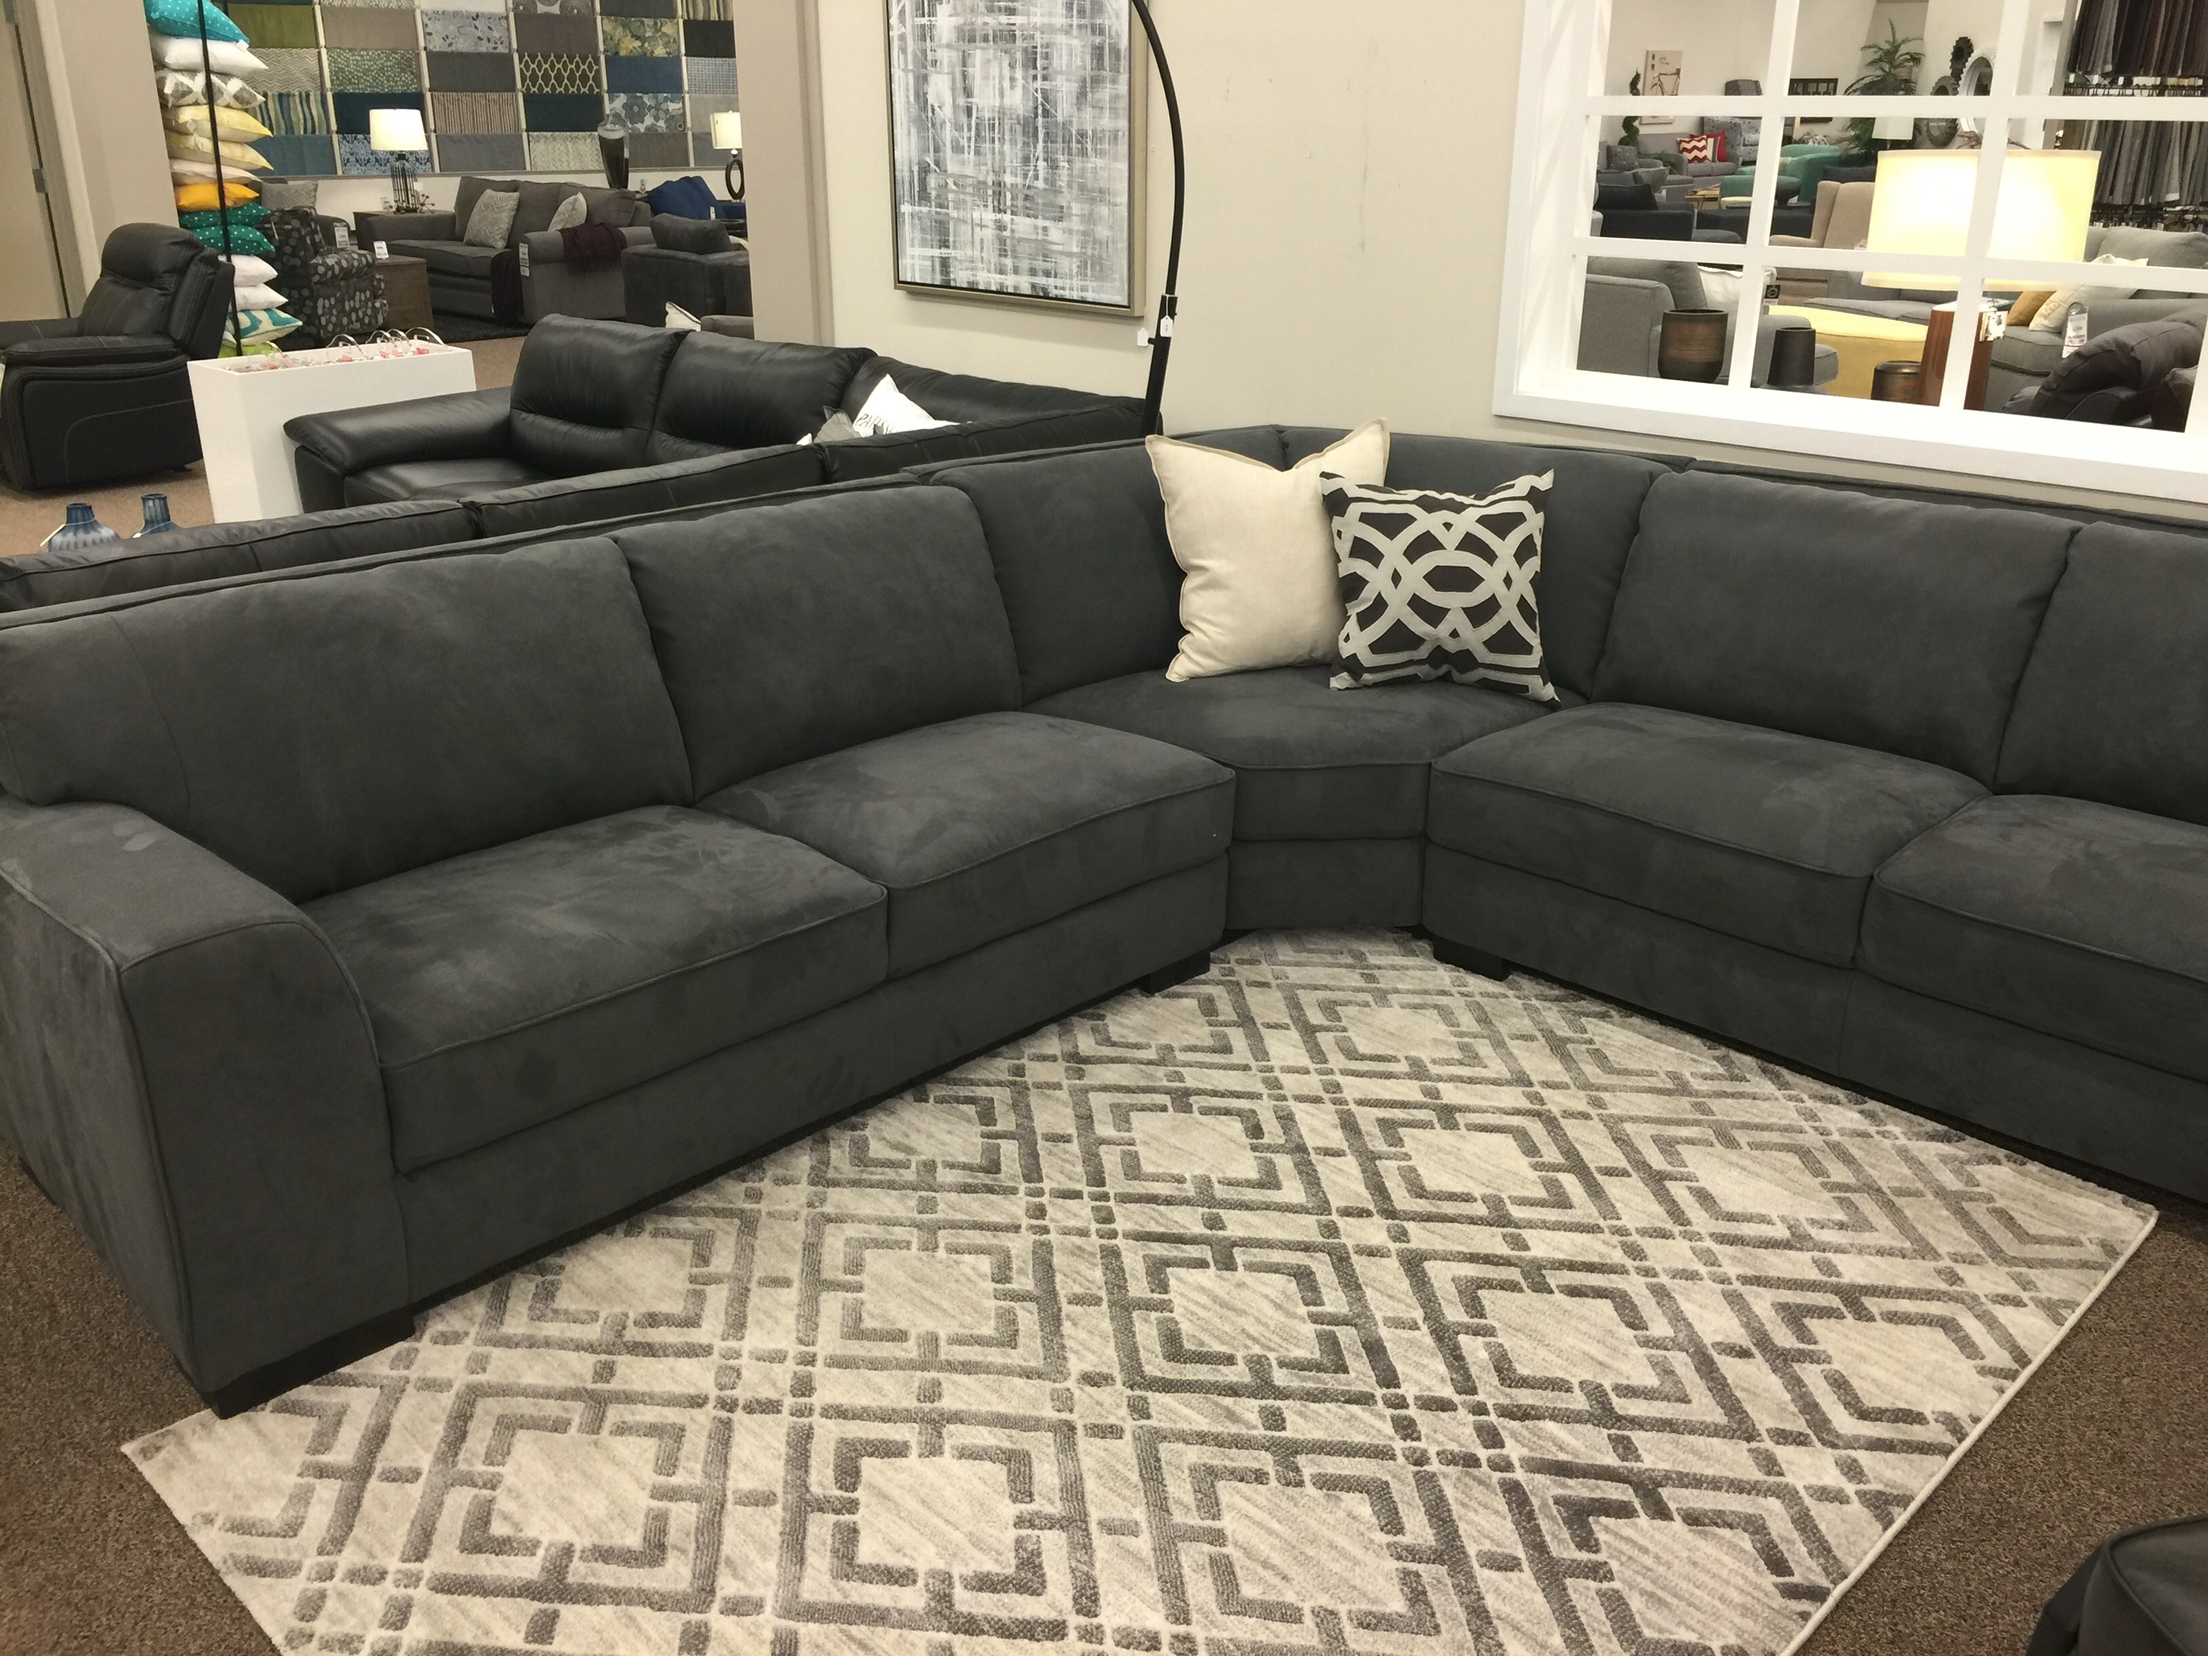 This Is All The Comfort We Can Fit Into A Price Of $1999! The Kellen In Nova Scotia Sectional Sofas (View 10 of 10)